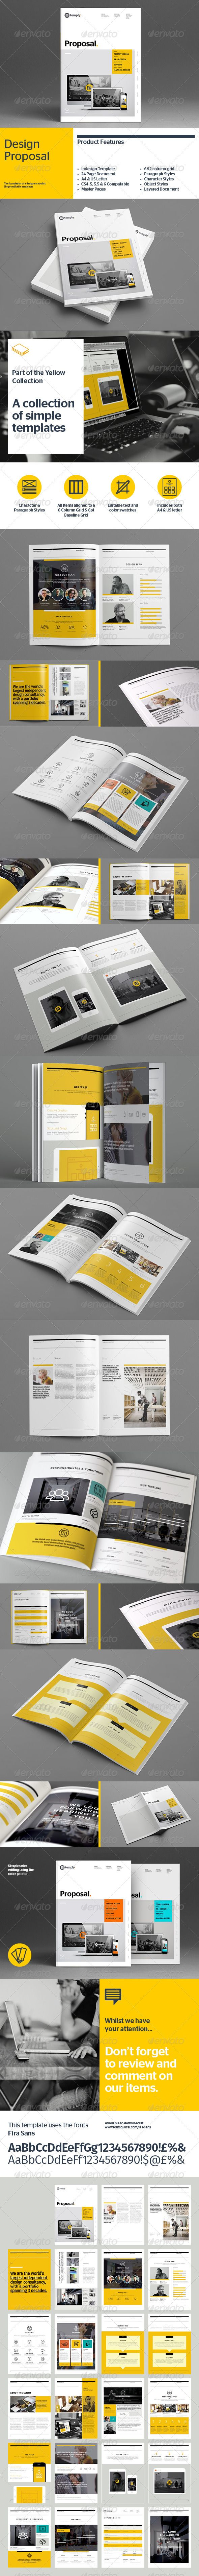 Proposal Template | Download: http://graphicriver.net/item/proposal-template/8536184?ref=ksioks